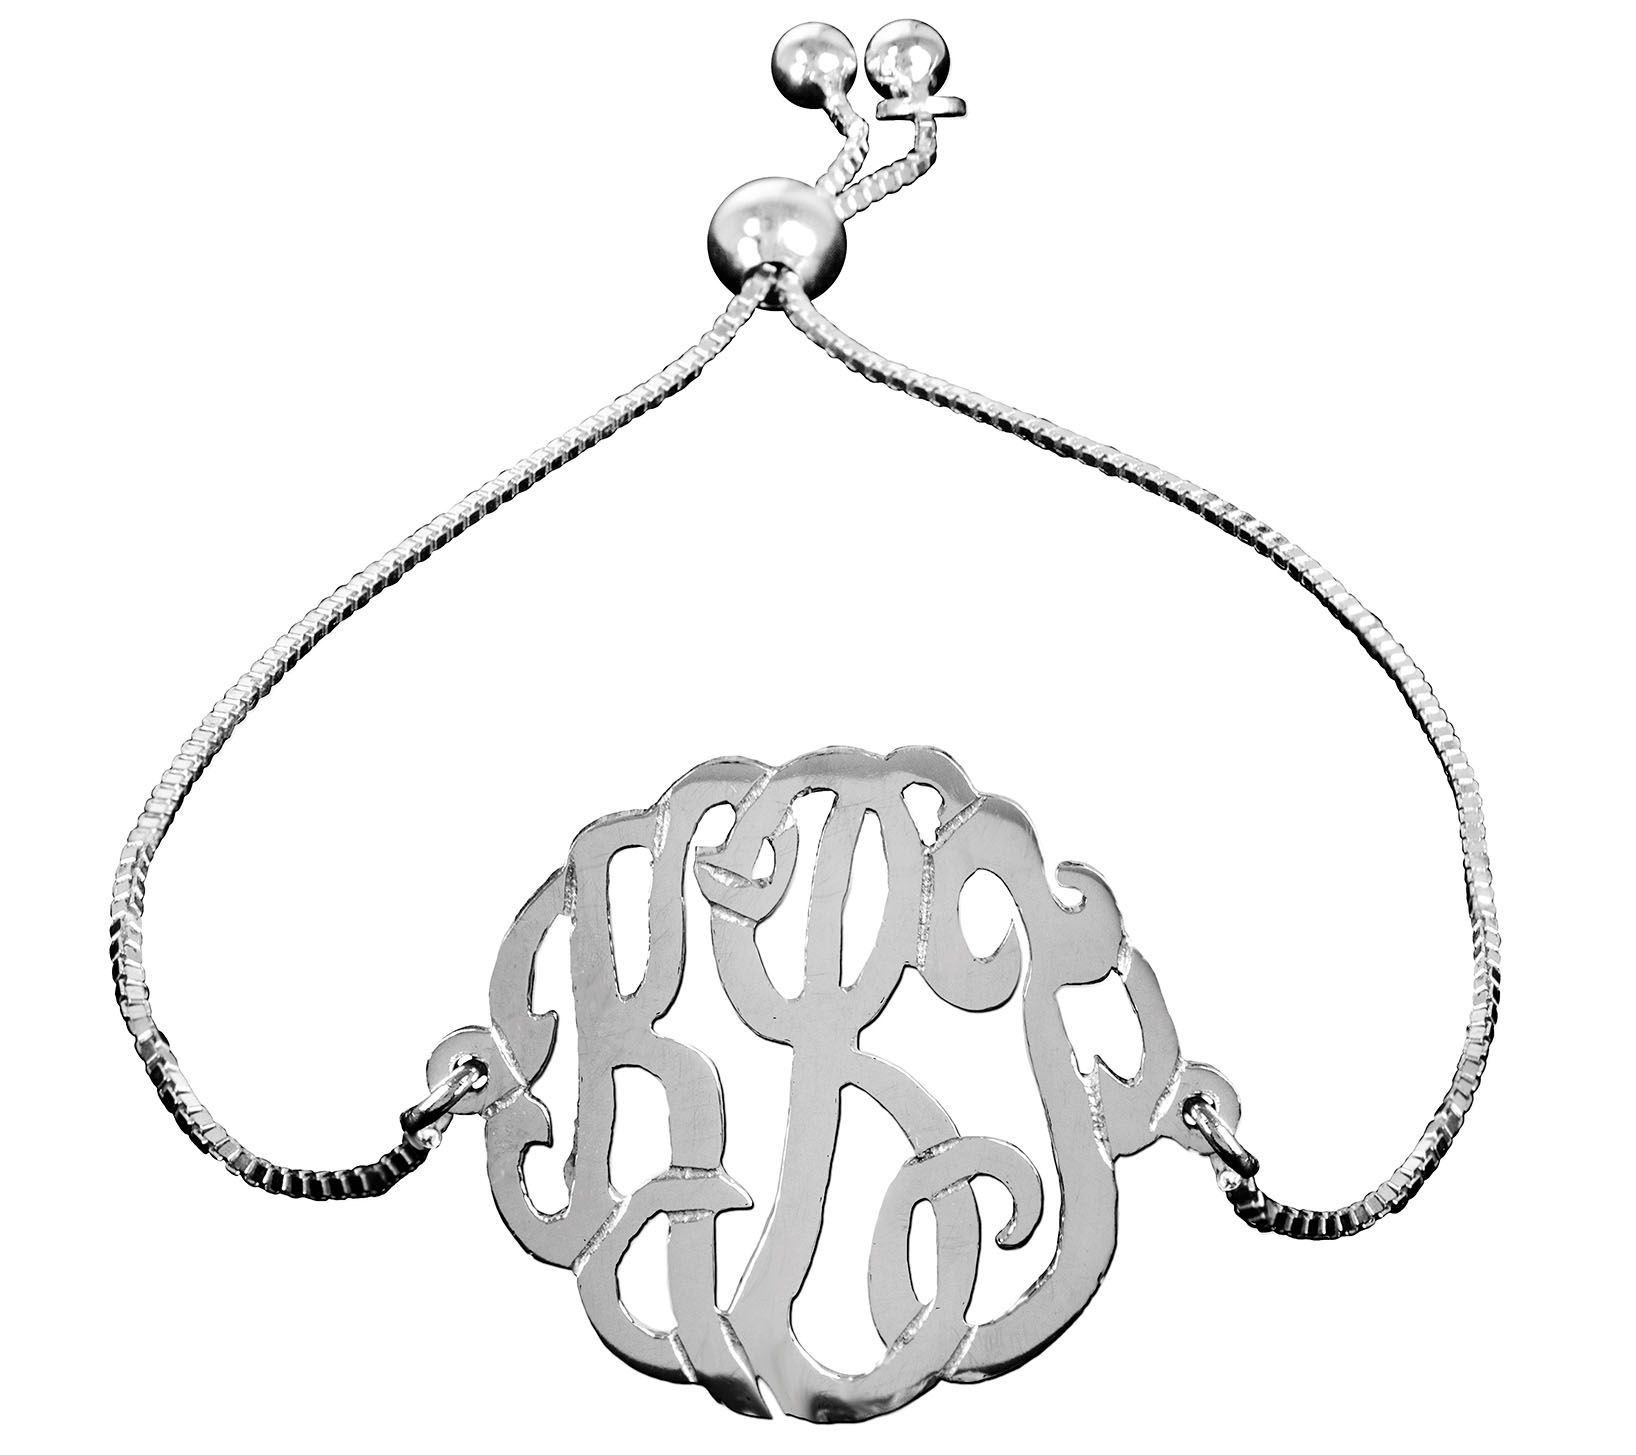 sale prices jewelry qvc Flag Pole Stoppers personalized sterling monogram adjustable bracelet j388165